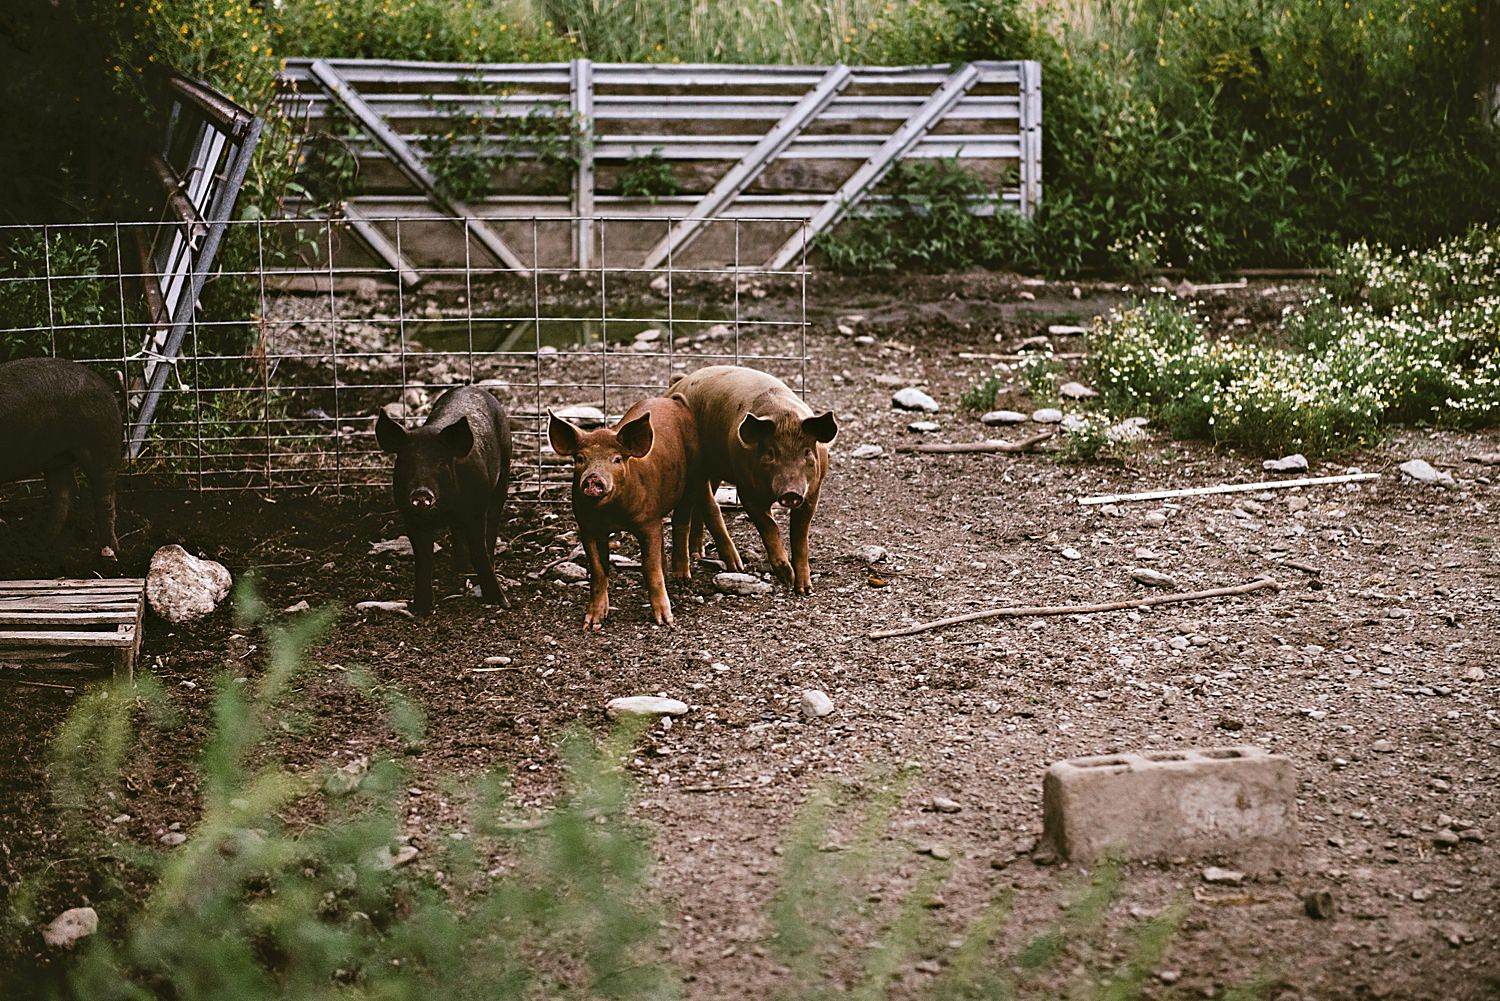 Pigs at the Cricket Creek Farm, Williamstown Ma